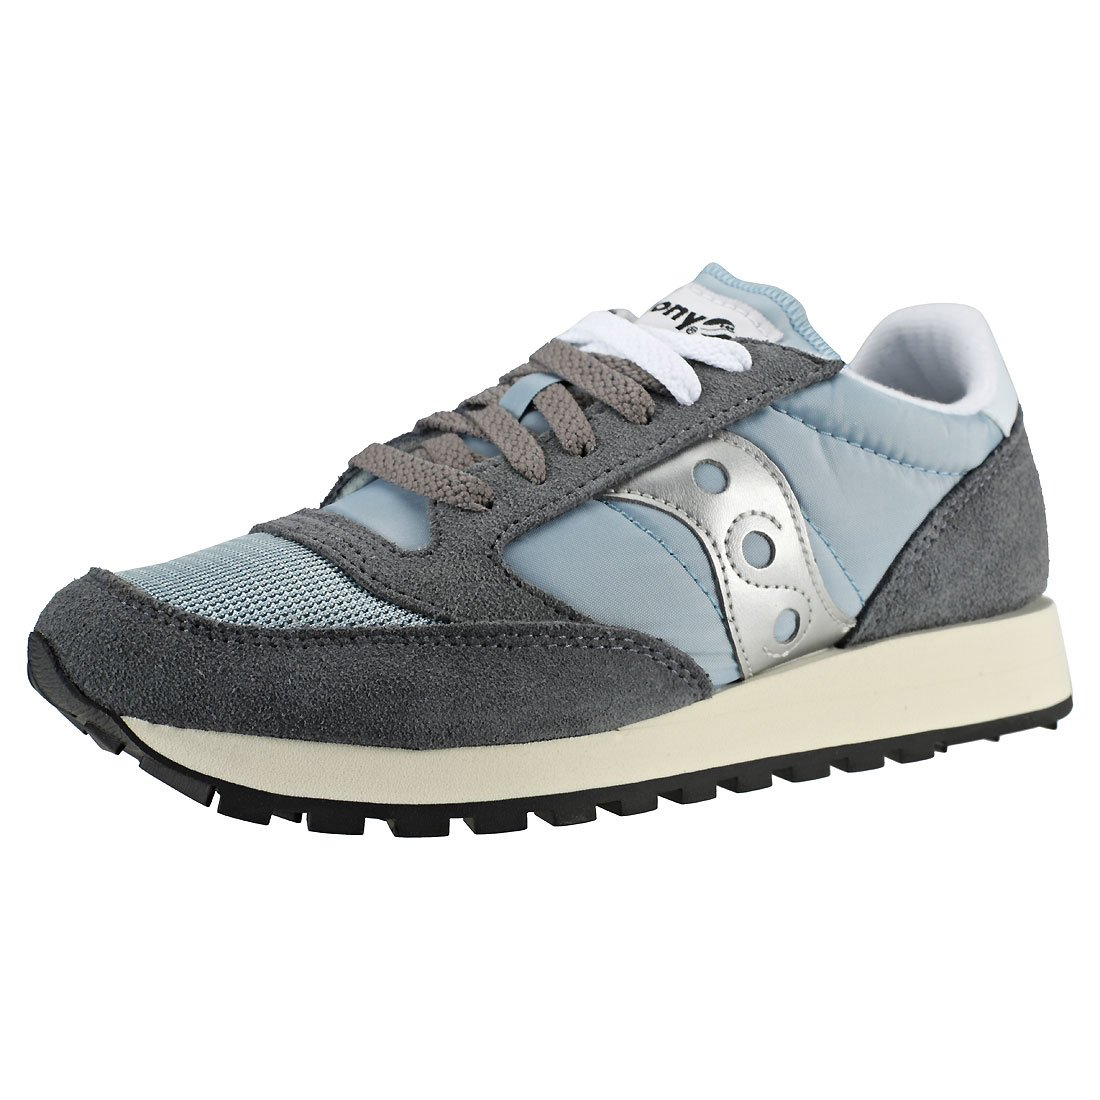 Saucony Originals Women's Jazz Vintage Running Shoe B07955LLZ1 8.5 M US|Grey/Blue/White